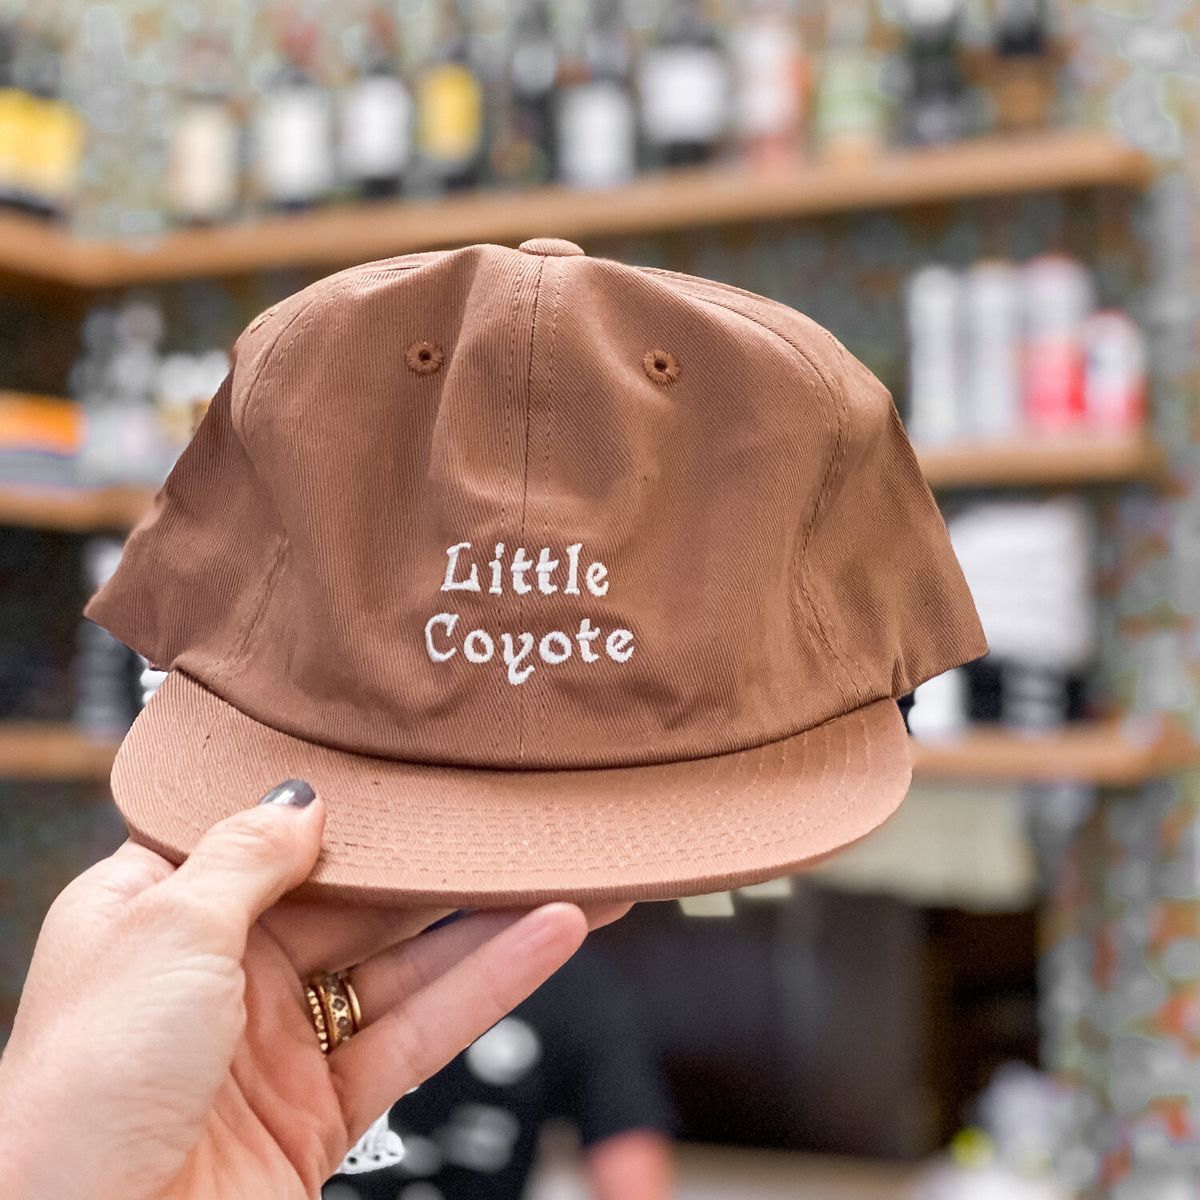 Little Coyote dad hat